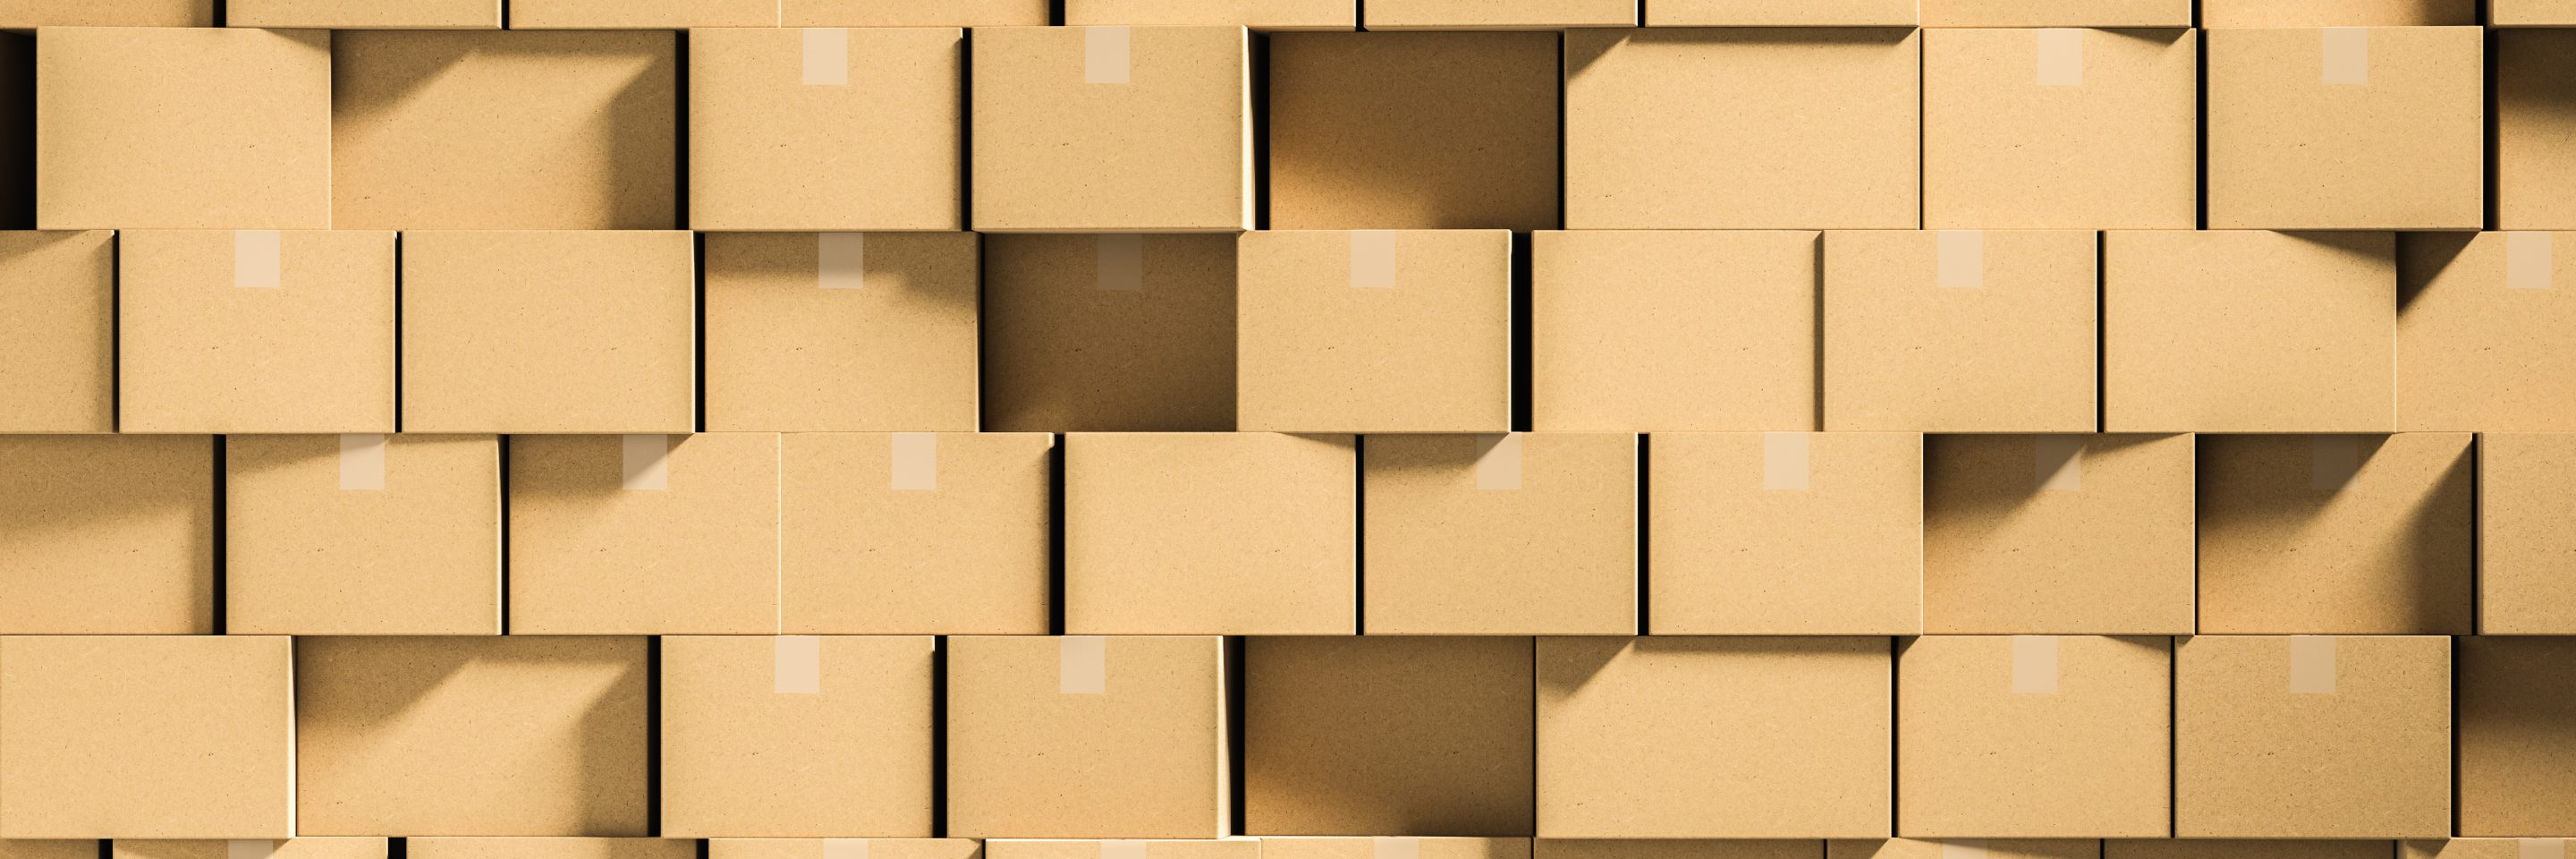 Wall of closed cardboard boxes on floor mock up